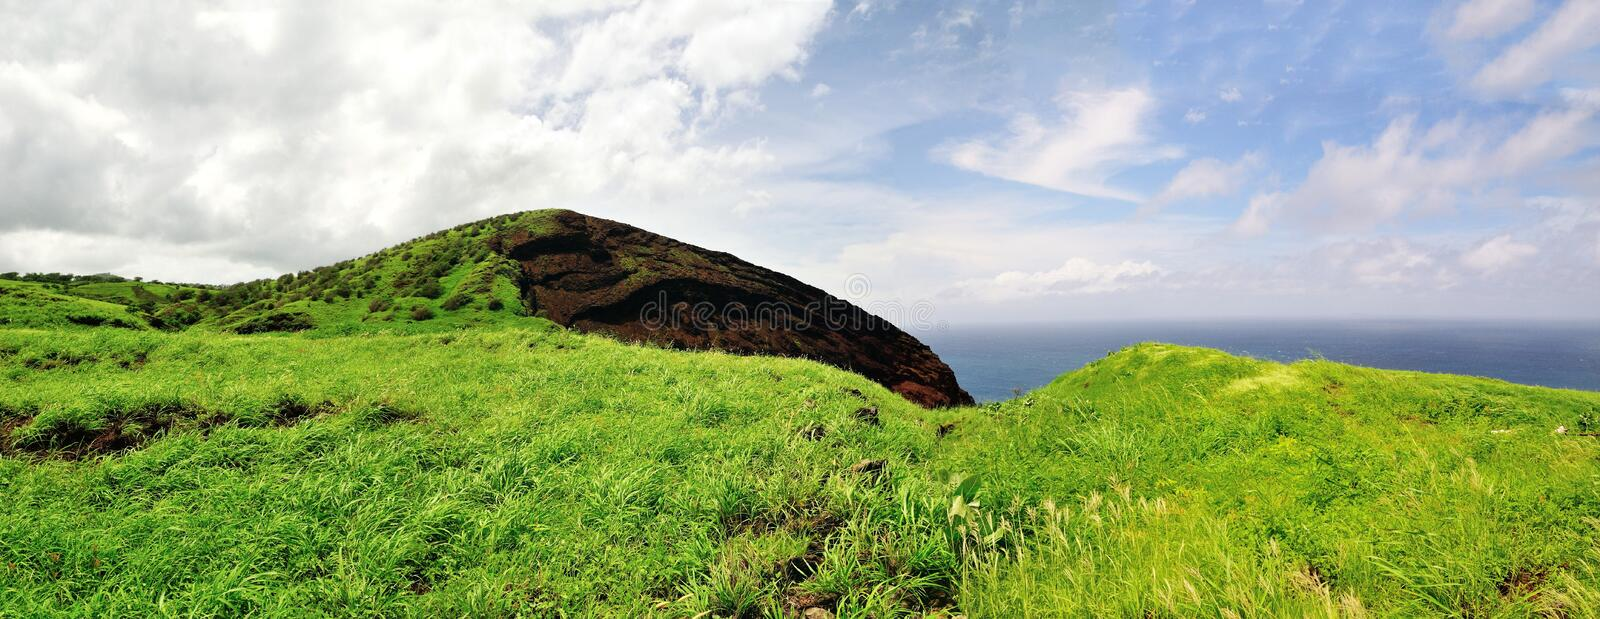 Cliff edge by the ocean. Cliff edge with green grass filed plateau extends over the ocean, on the island of Fogo, in Cabo Verde royalty free stock image